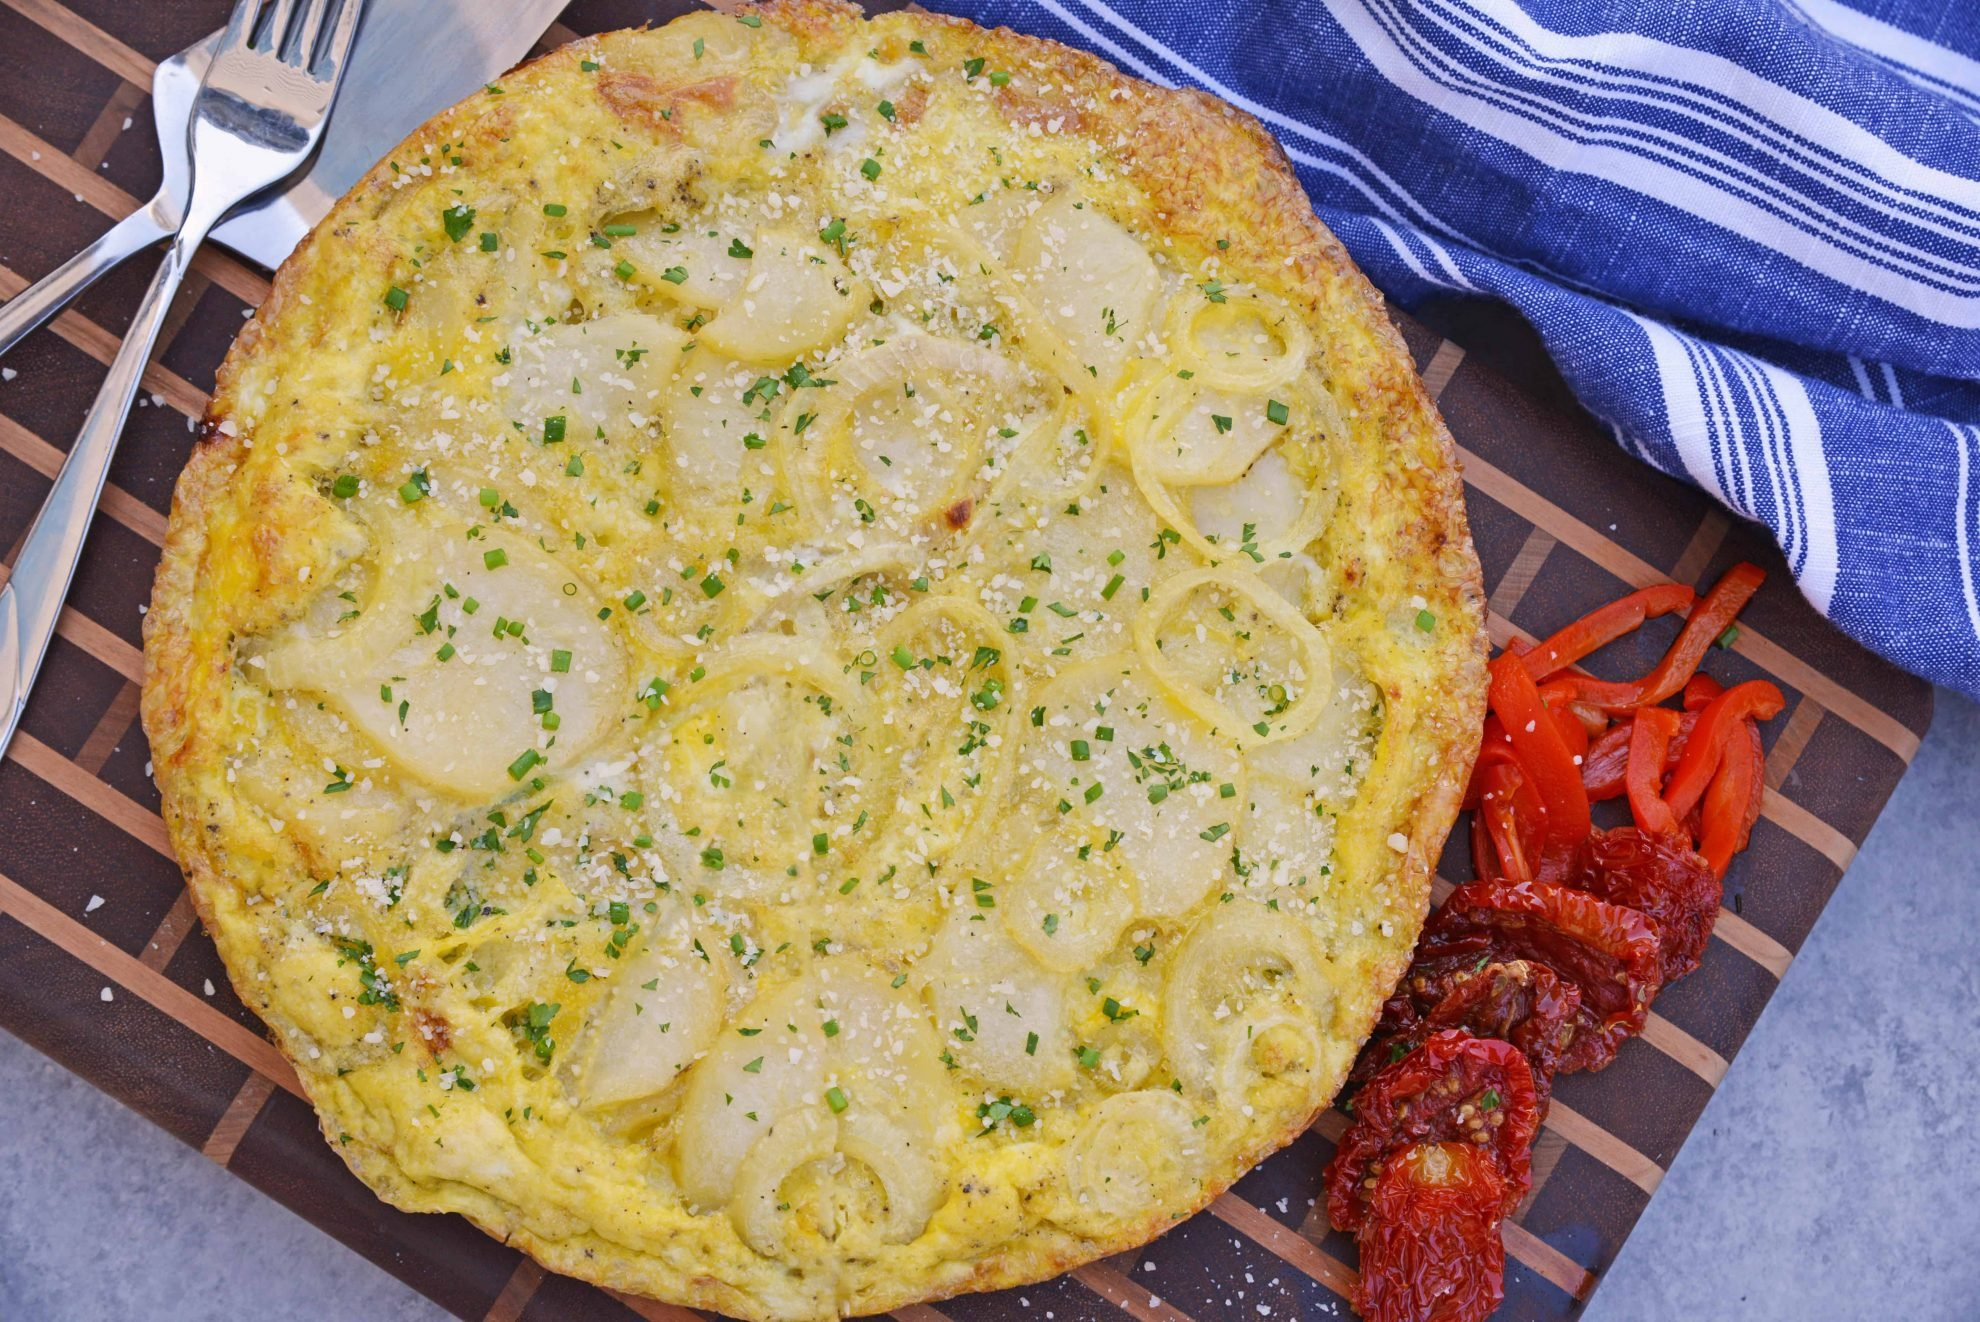 Tortilla Espanola, also known as Spanish Tortilla or Potato Tortilla, is a Spanish egg dish made with fried potatoes, onions and cheese. #tortillaespanola #spanishtortilla #potatotortilla www.savoryexperiments.com